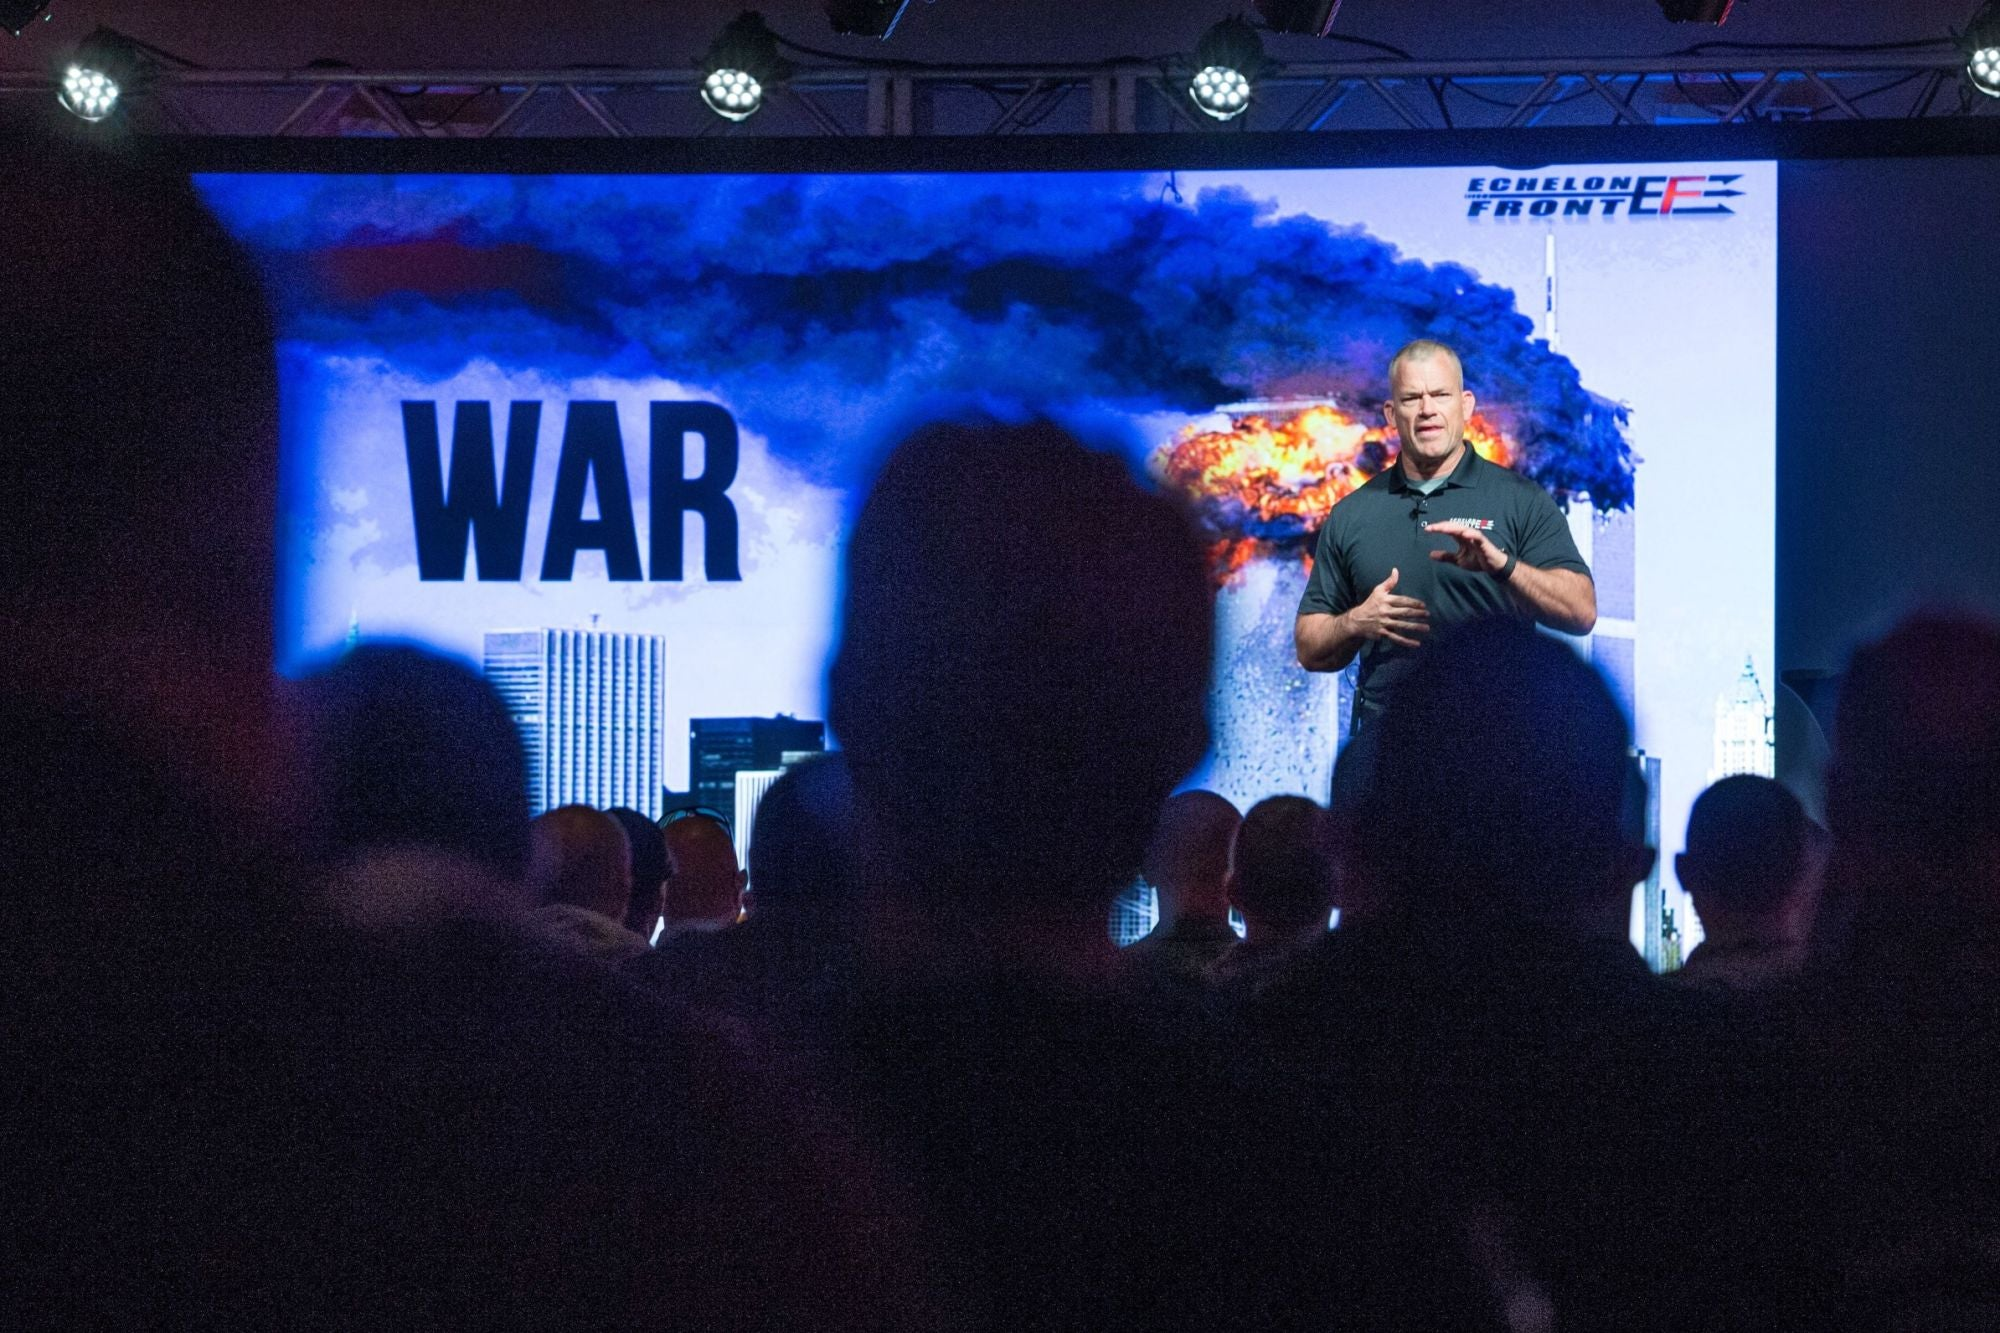 I Spent Two Days with Decorated War Veterans. Here's What I Learned About Leadership.